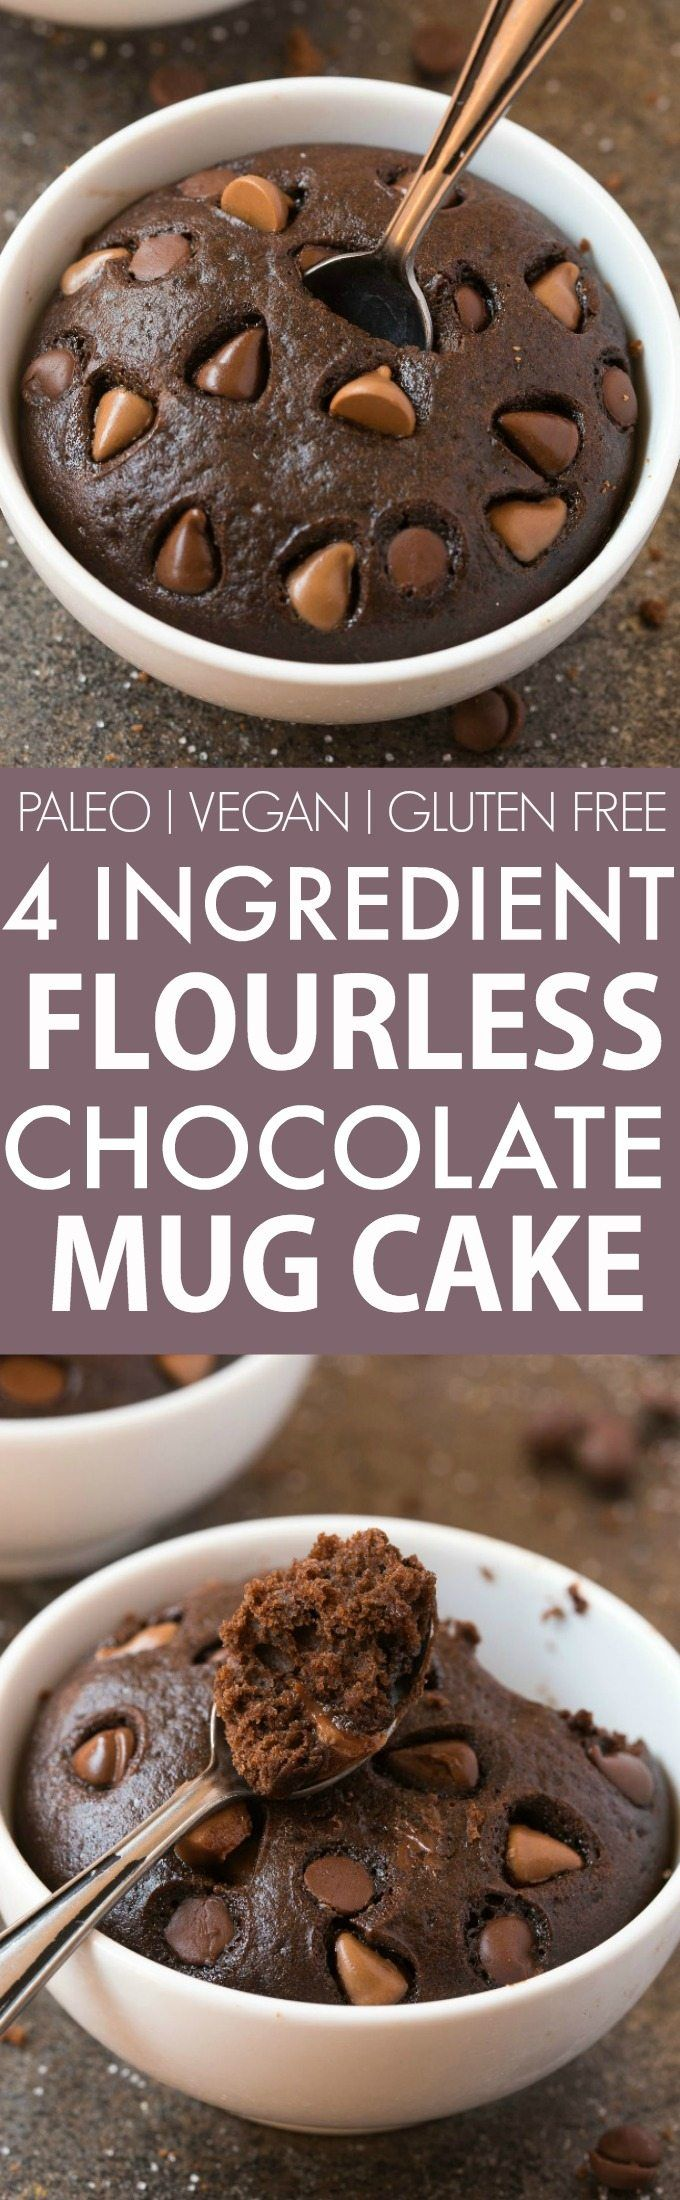 4 Ingredient Flourless Chocolate Mug Cake (V, GF, Paleo)- Ready in just ONE minute, this HEALTHY 4-ingredient chocolate cake is moist, gooey, naturally sweetened and has NO butter, oil, flour, grains or sugar, but you'd never tell- Oven option too! {vegan, gluten free, paleo recipe}- thebigmansworld.com